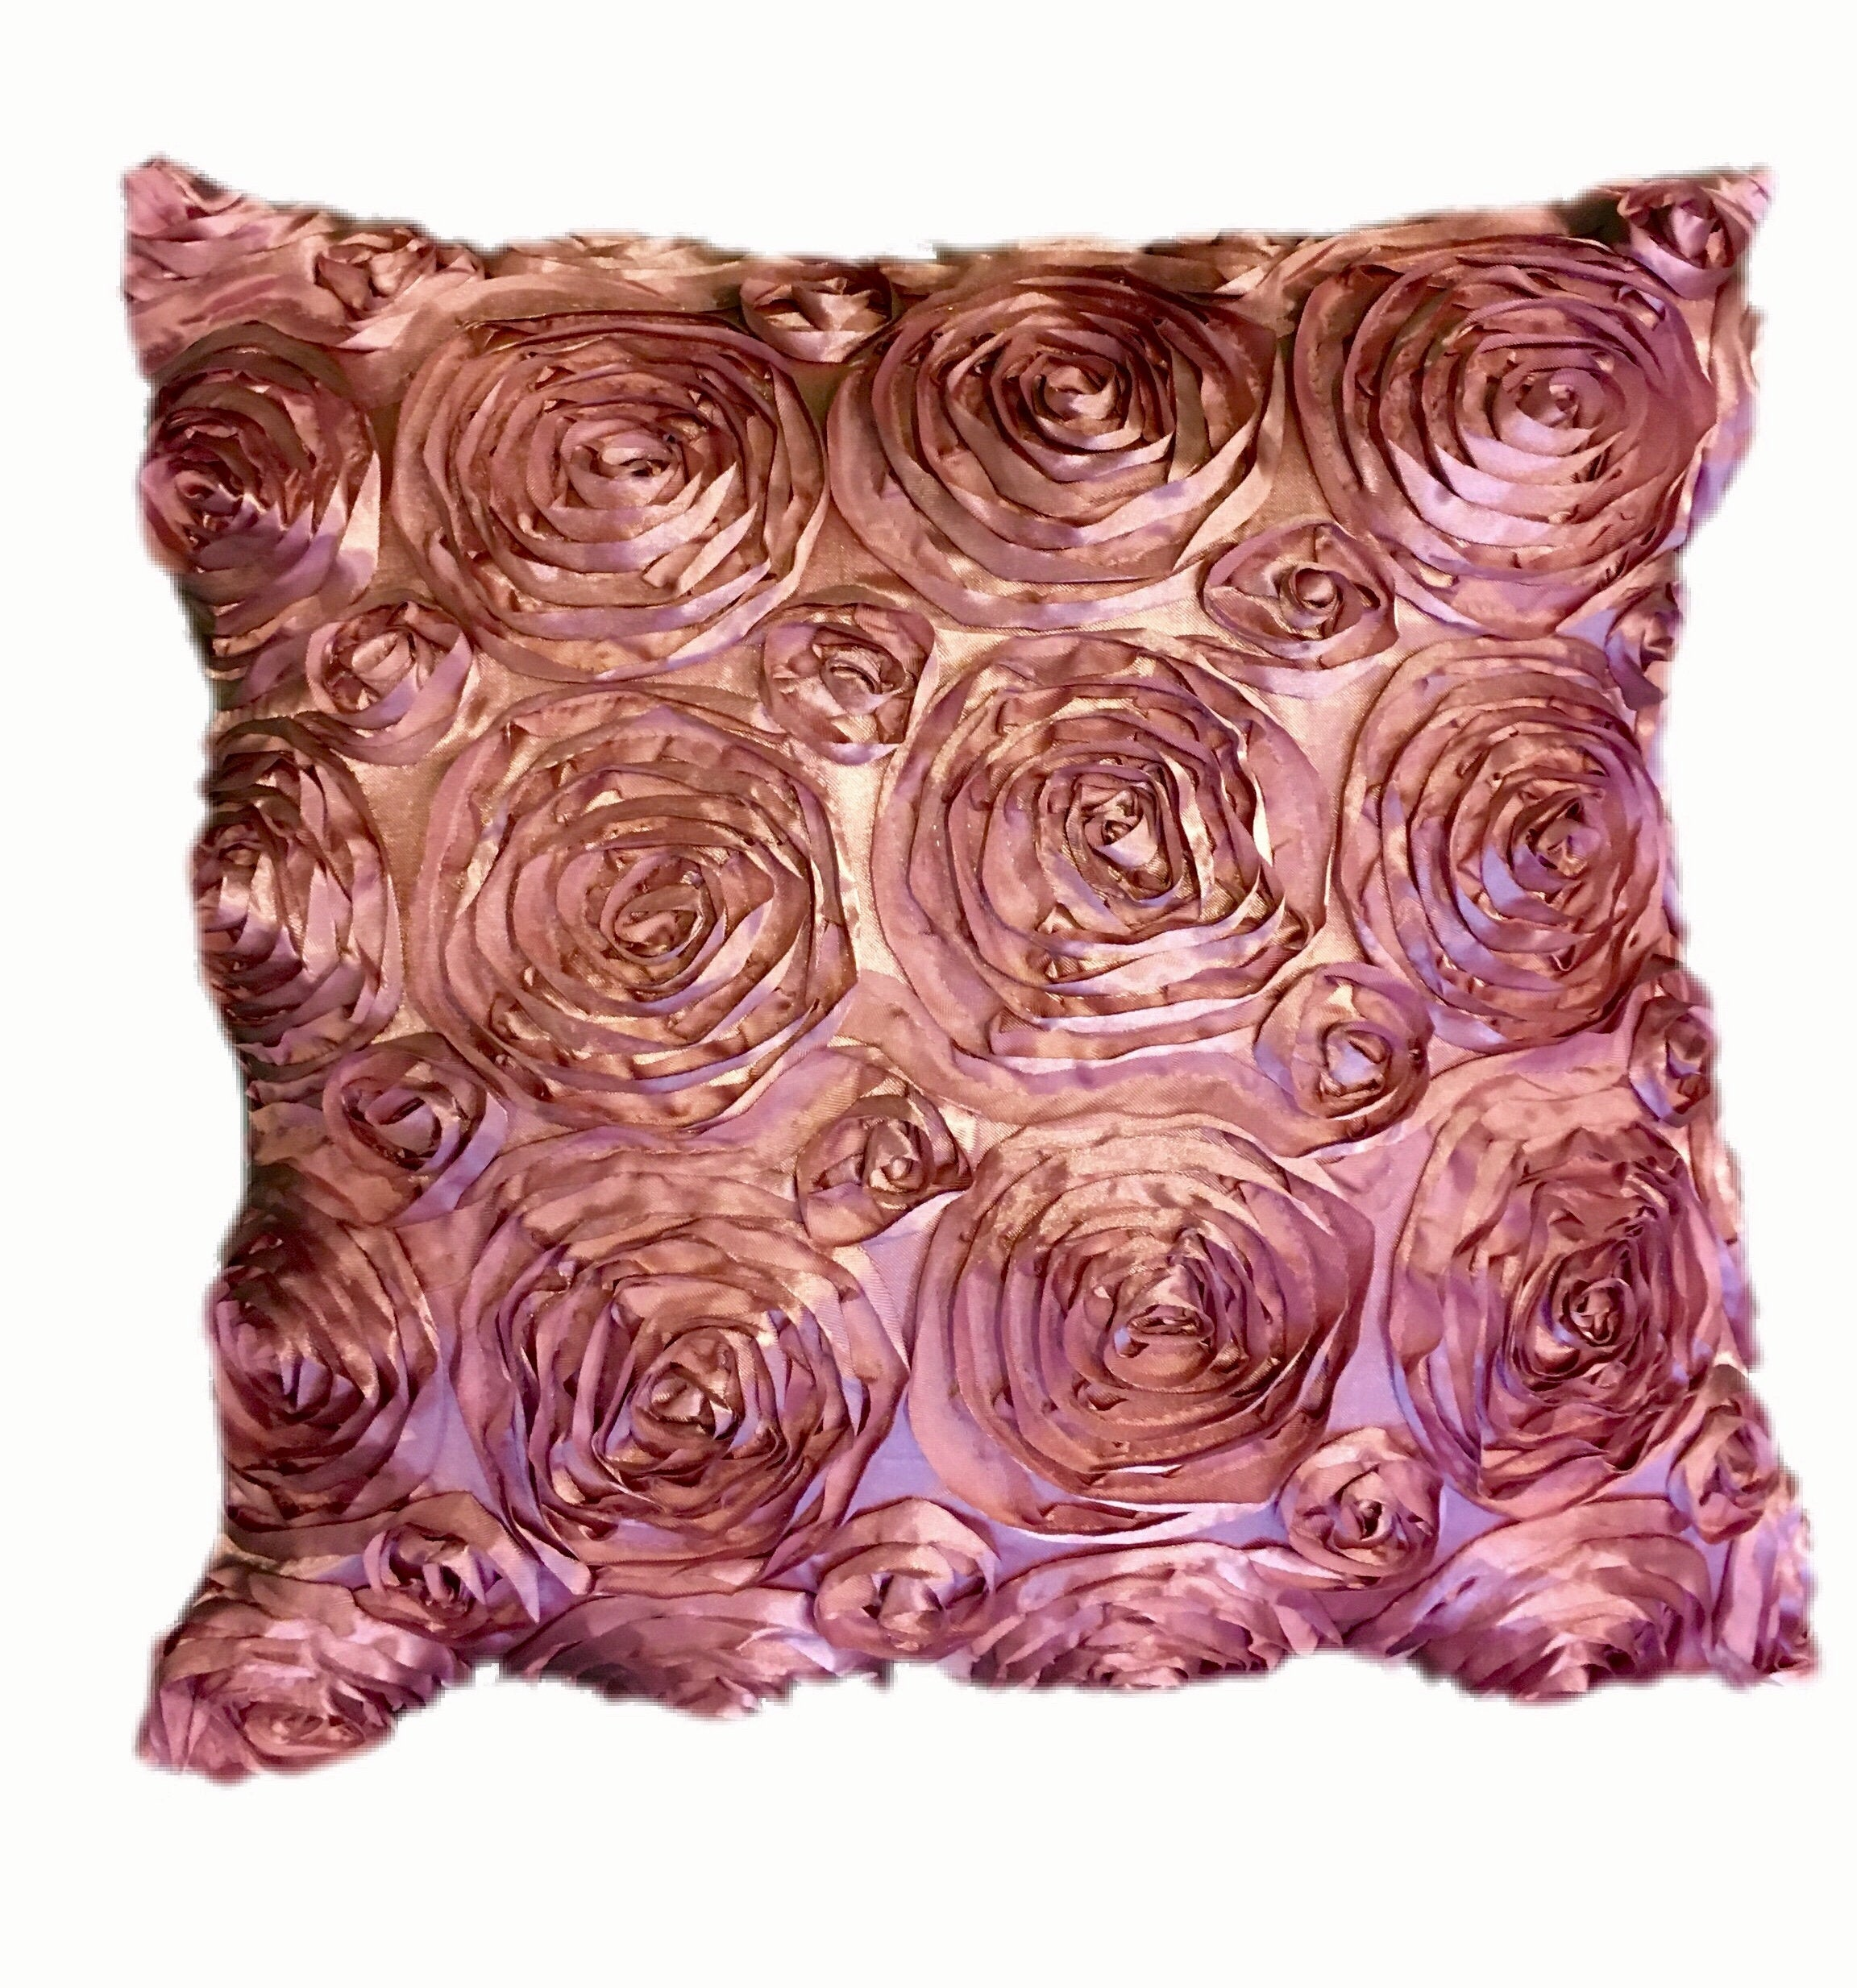 "Rosette Pair Embroidered Satin Decorative 18""x18"" Pillow 